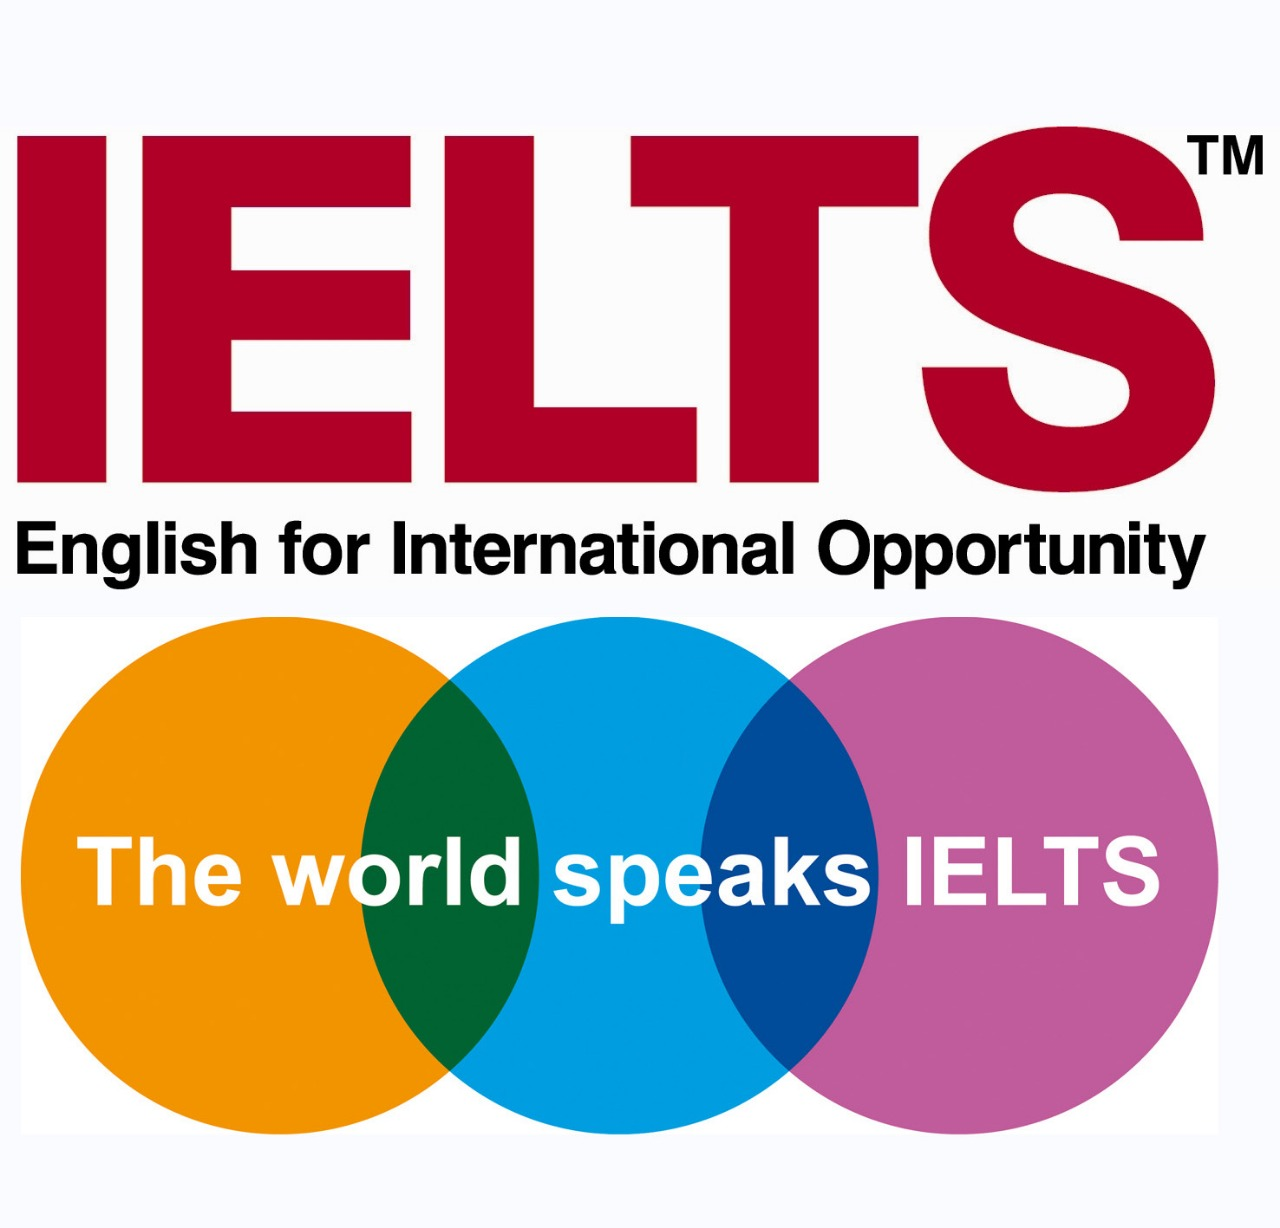 IELTS EXAMINATION FEES REVISED FROM RS 12,650 TO RS 13,250.